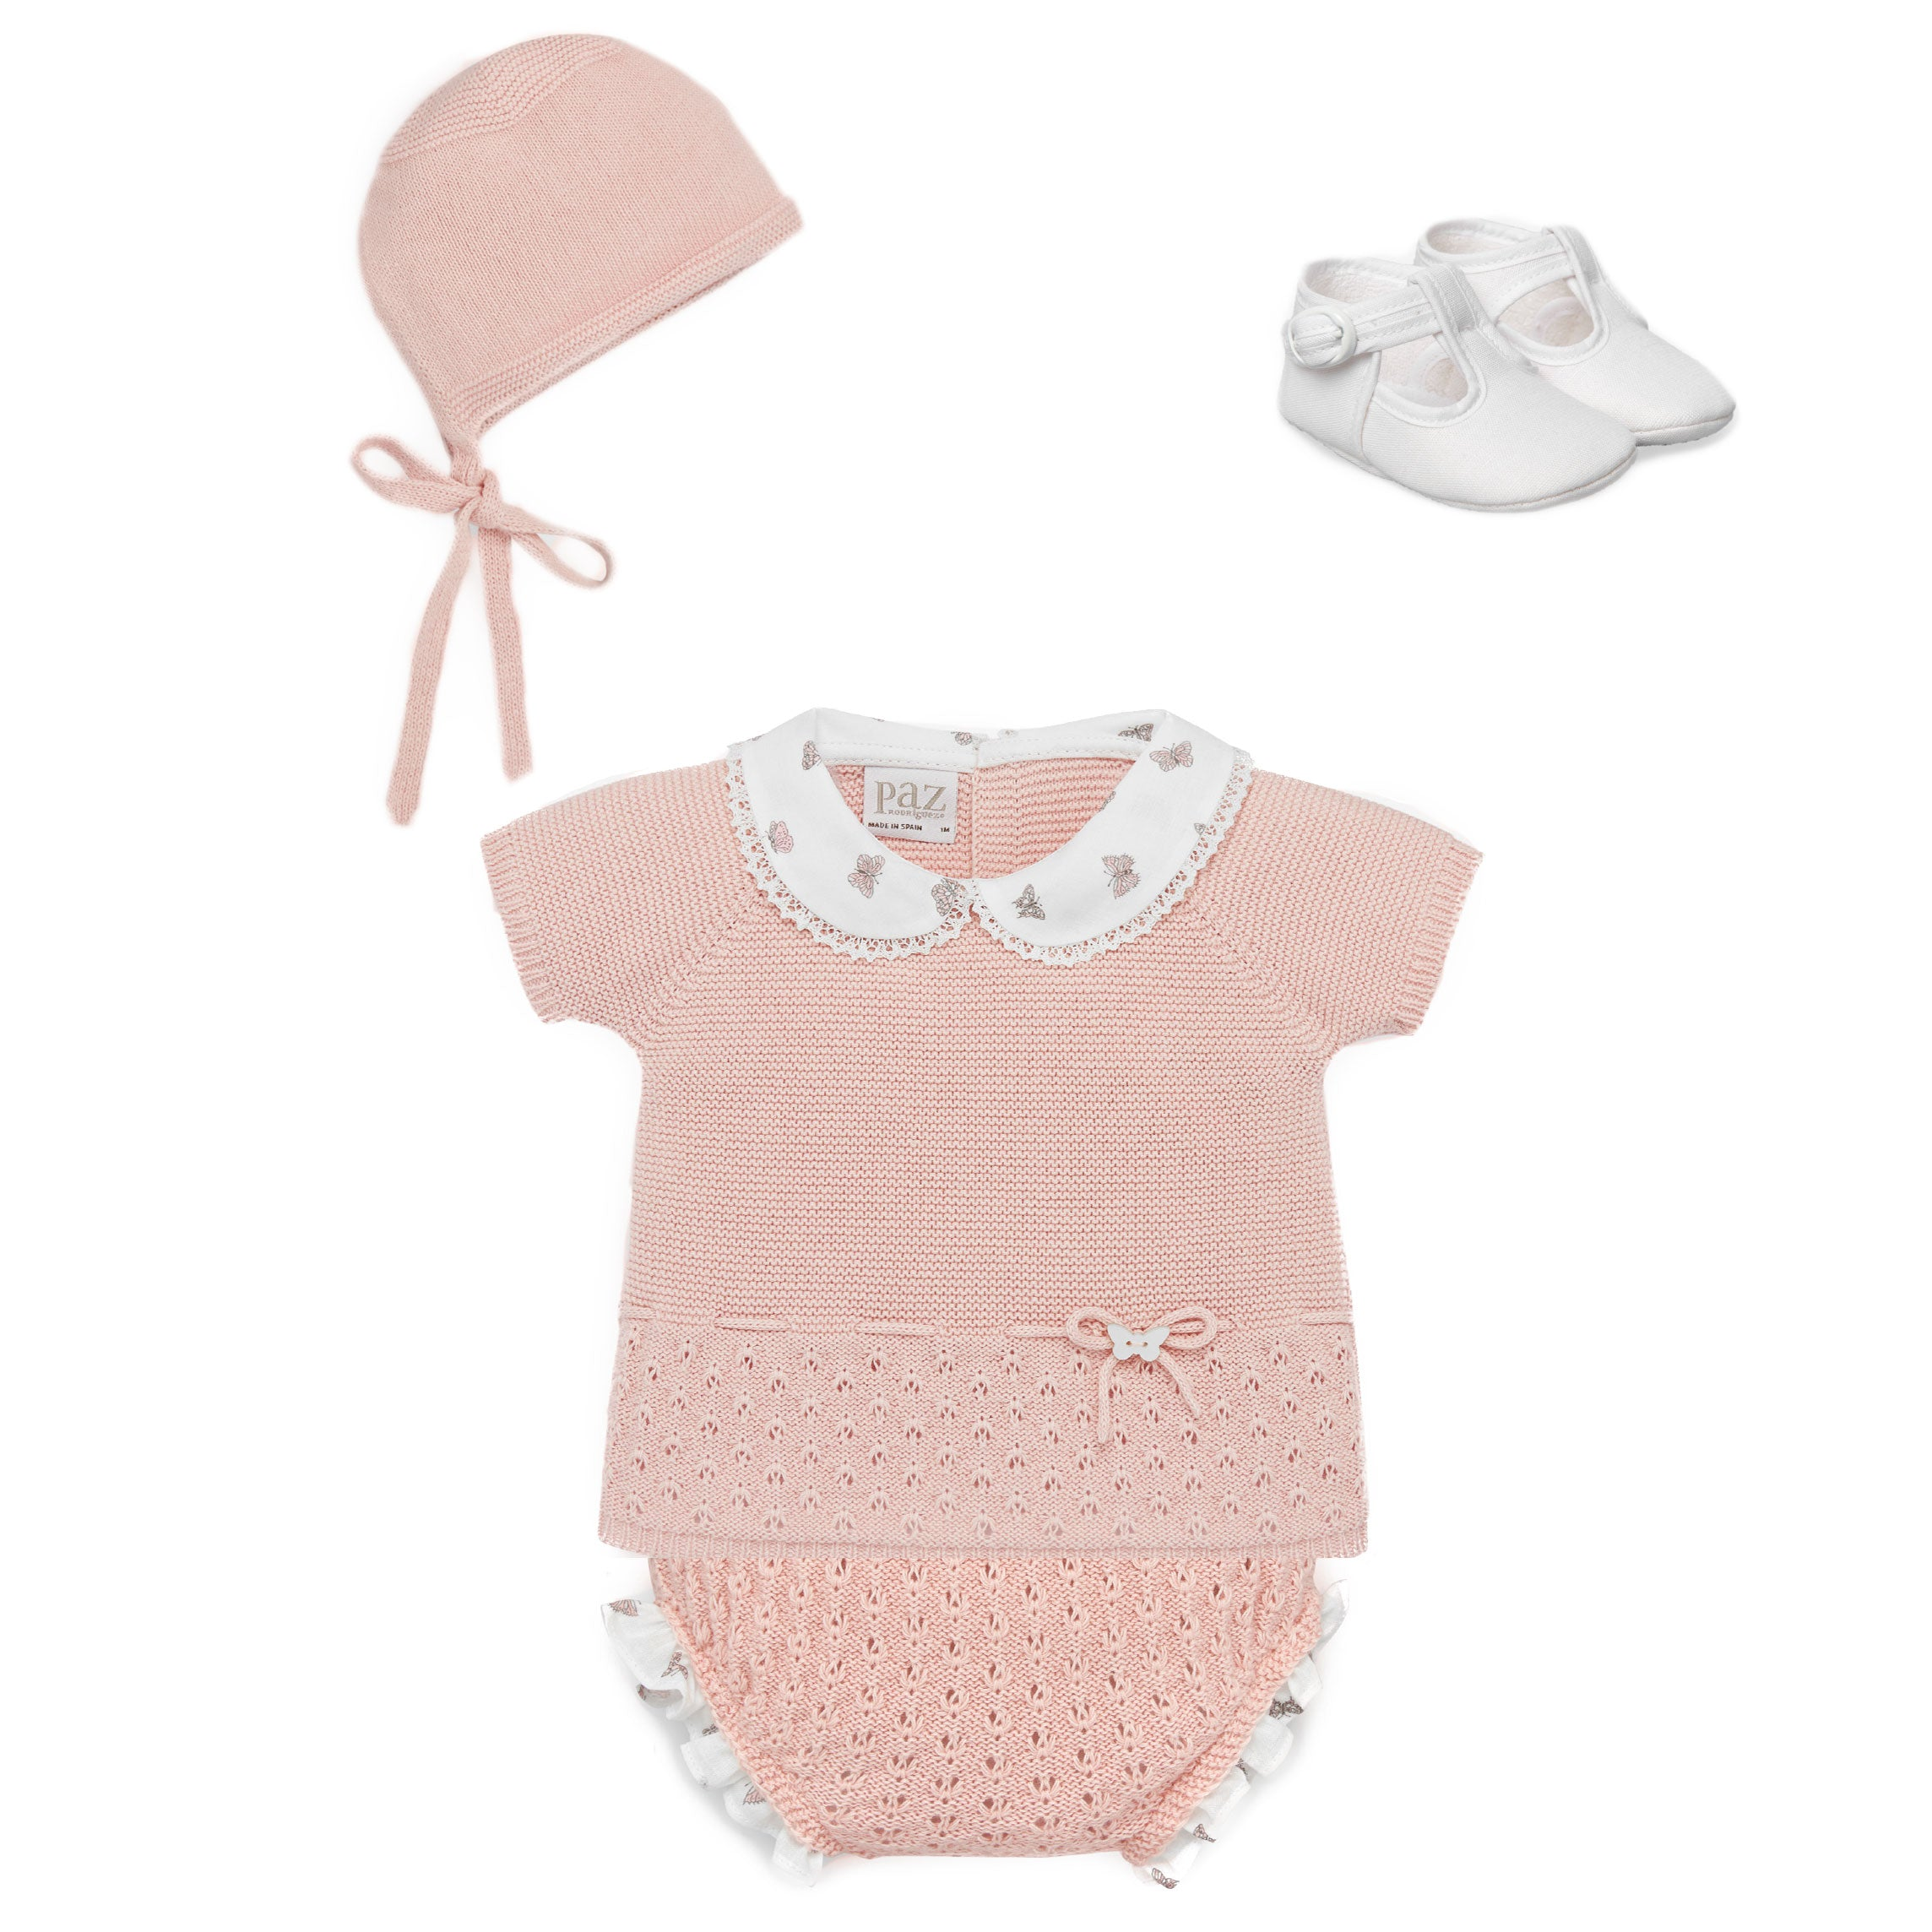 Paz Rodriguez Luxury Baby Gift set in antique rose at Bonjour Baby Baskets